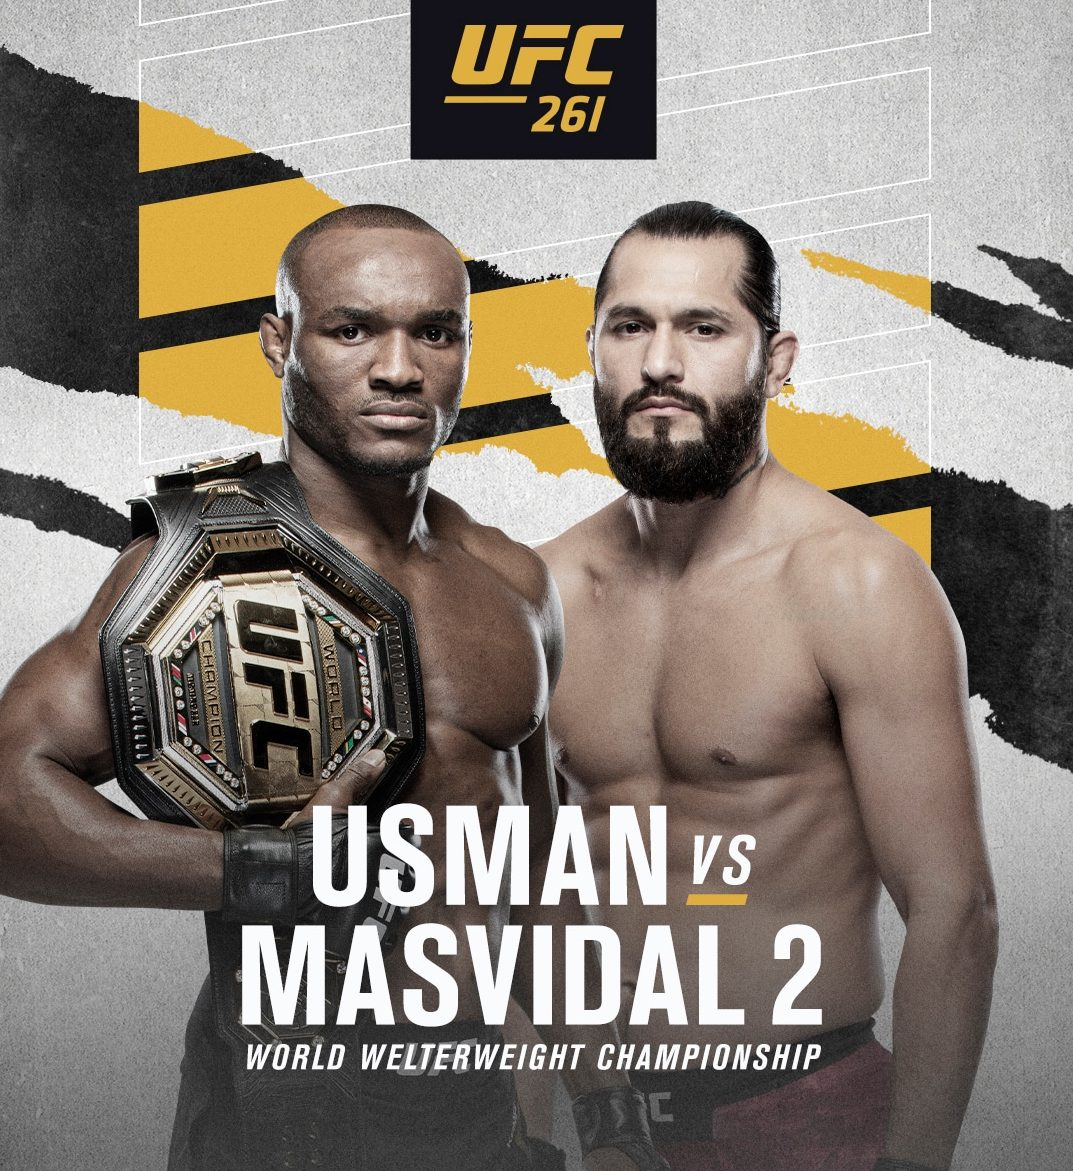 UFC Champion, Usman Gears Up For Fierce Fight Against Masvidal On Saturday